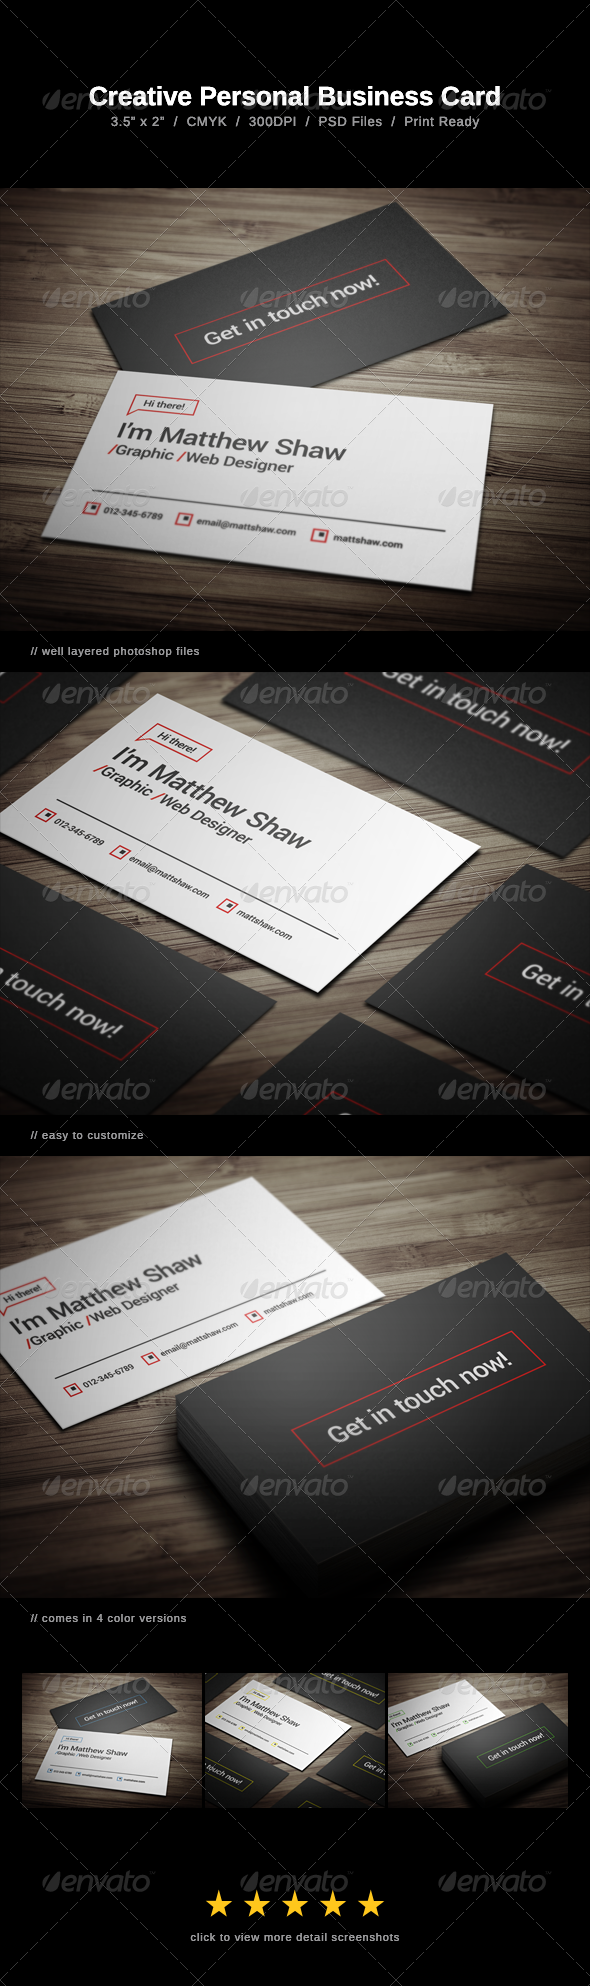 GraphicRiver Creative Personal Business Card 8588075